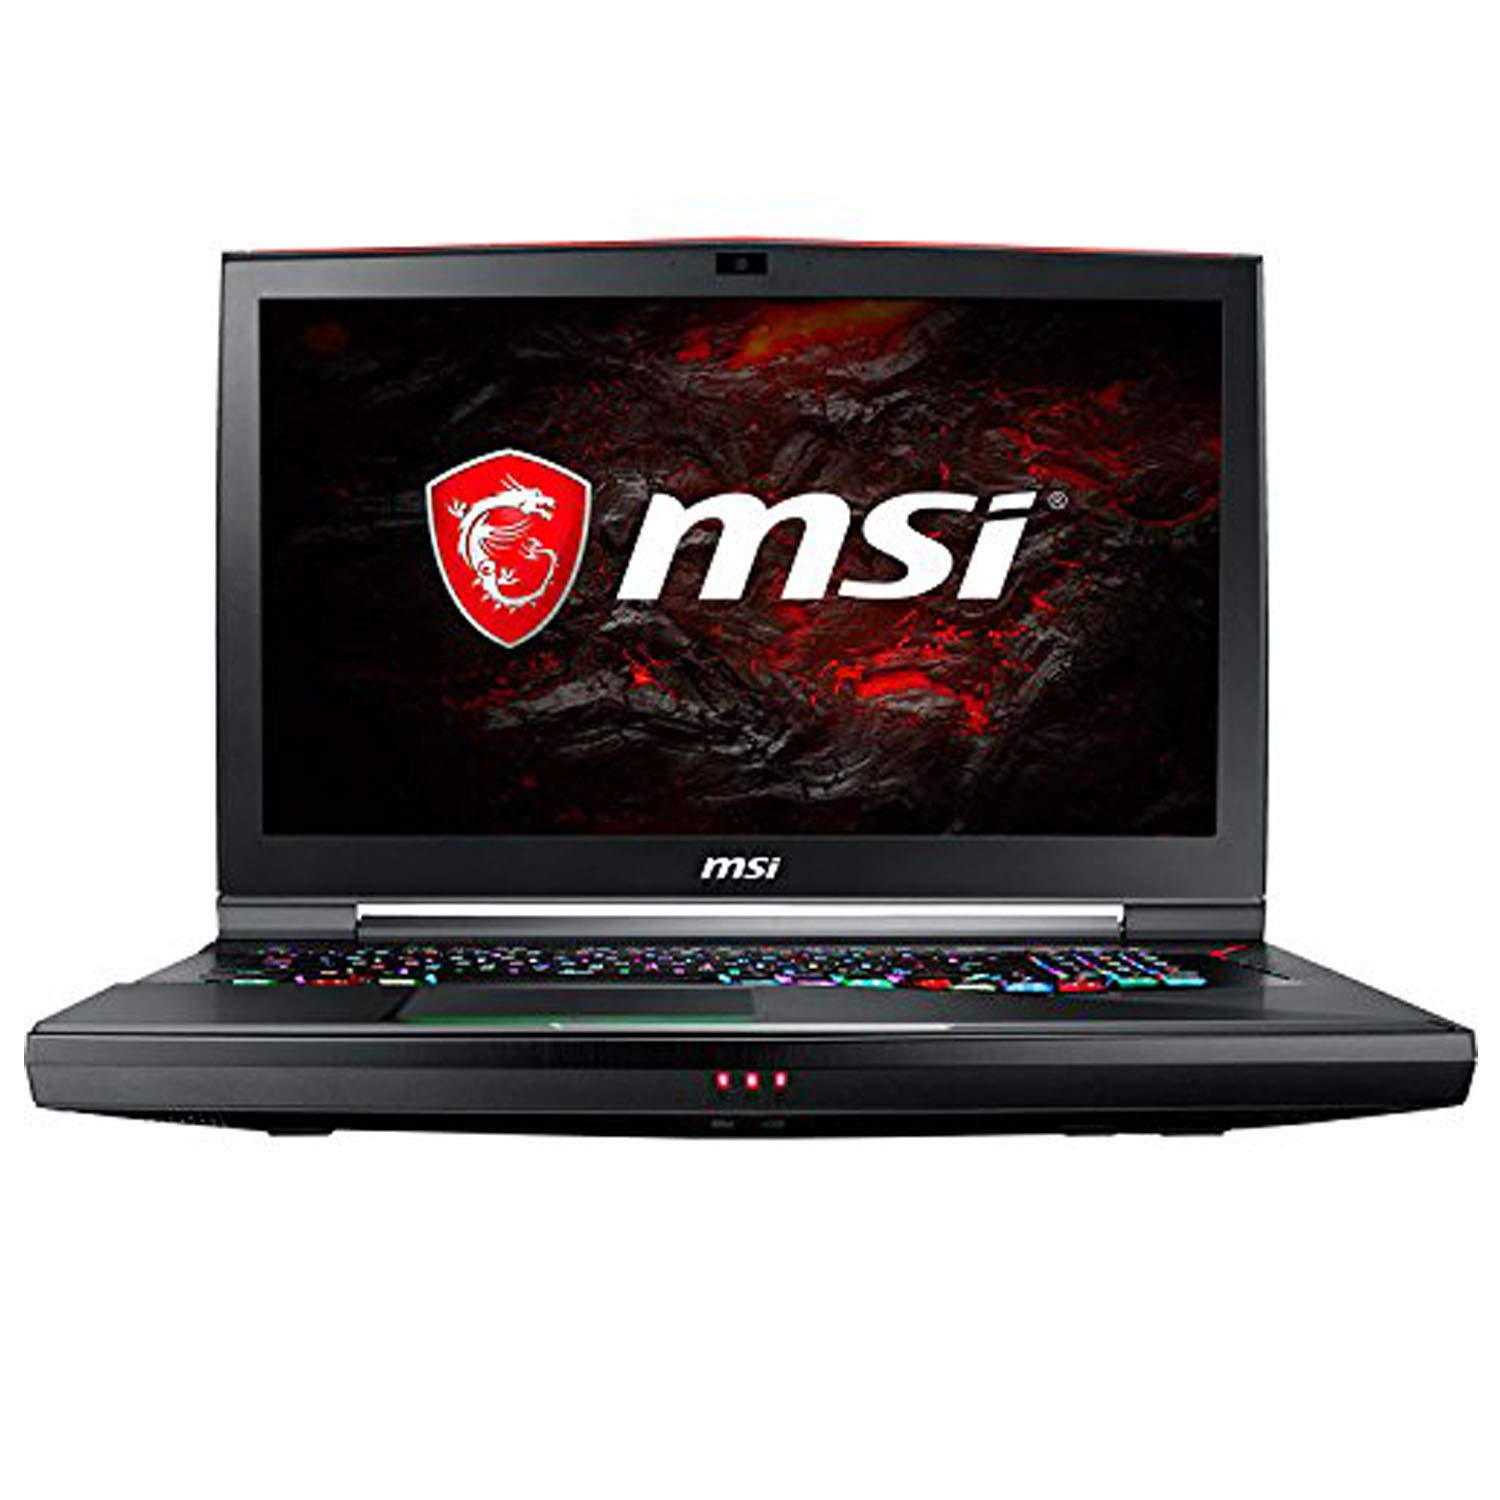 【おしゃれ】 MSI Keyboard, GT75 TITAN-013 Mechanical Premium Gaming and VR Business Laptop (Intel i9-8950HK 6-Core, 64GB RAM, 1TB HDD + 512GB PCIe SSD, 17.3